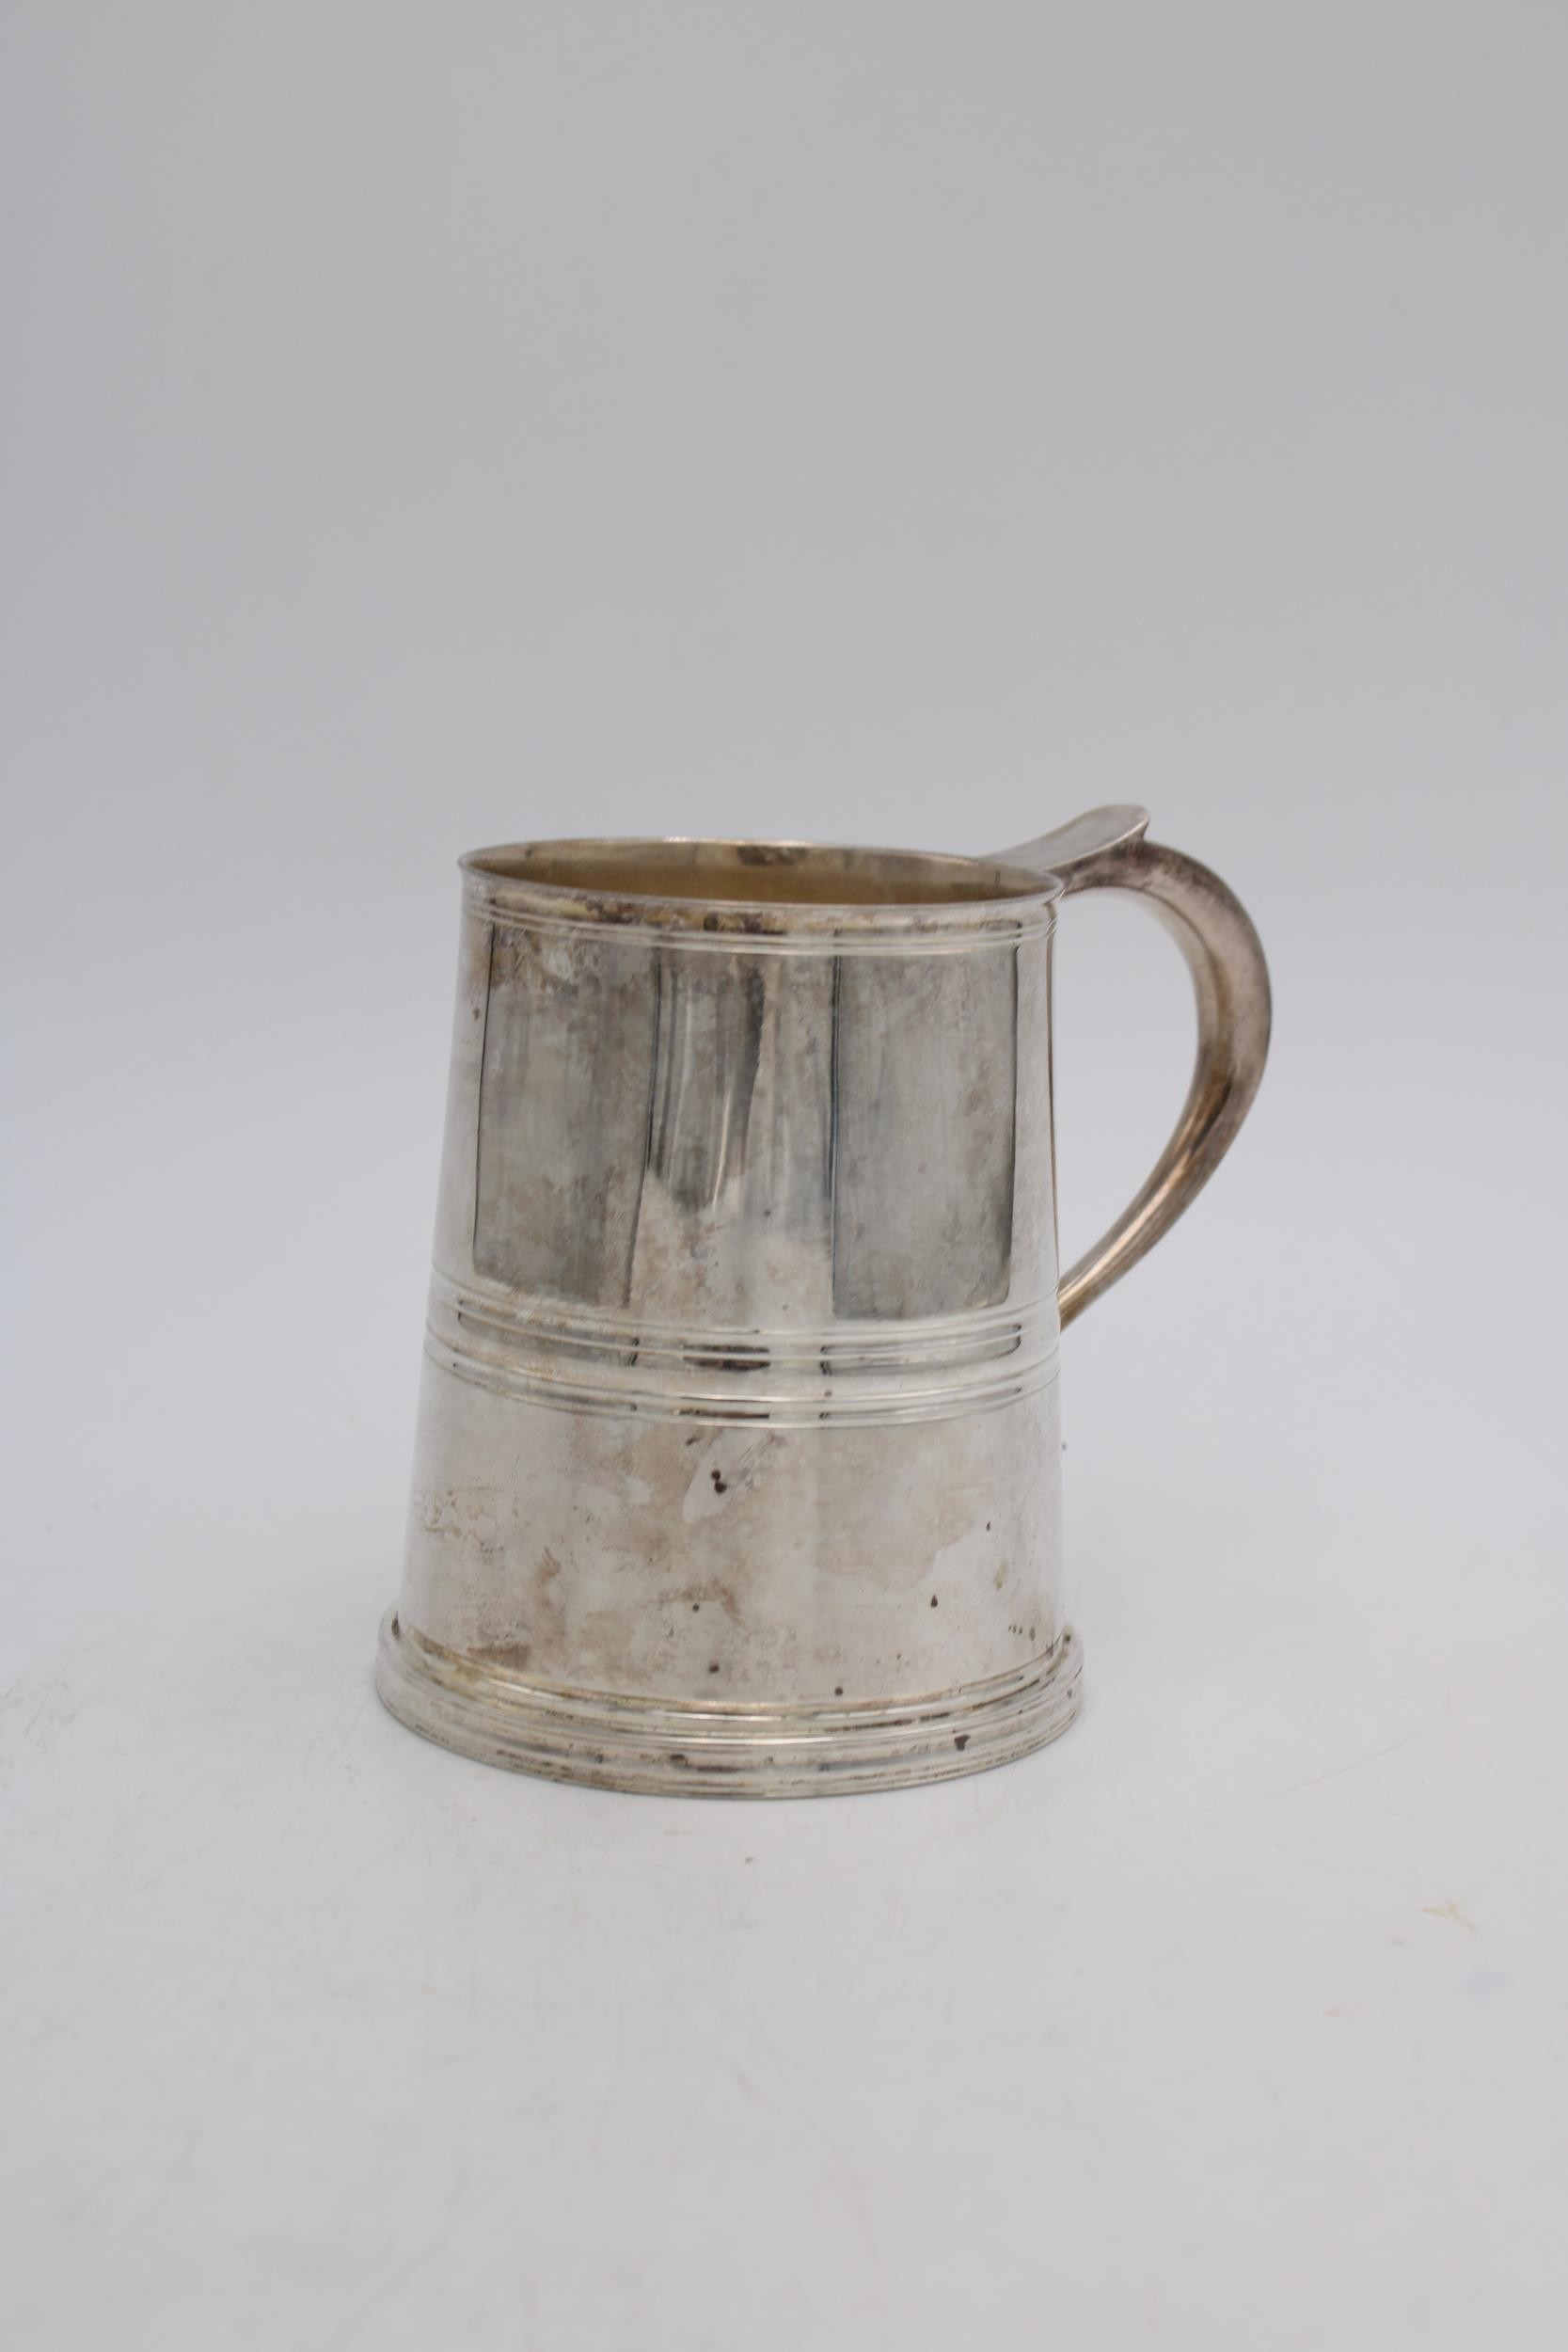 A HEAVY KINGSWAY PLATE E.P.N.S TAPERED TANKARD WITH HANDLE, 11.5cm high - Image 2 of 3